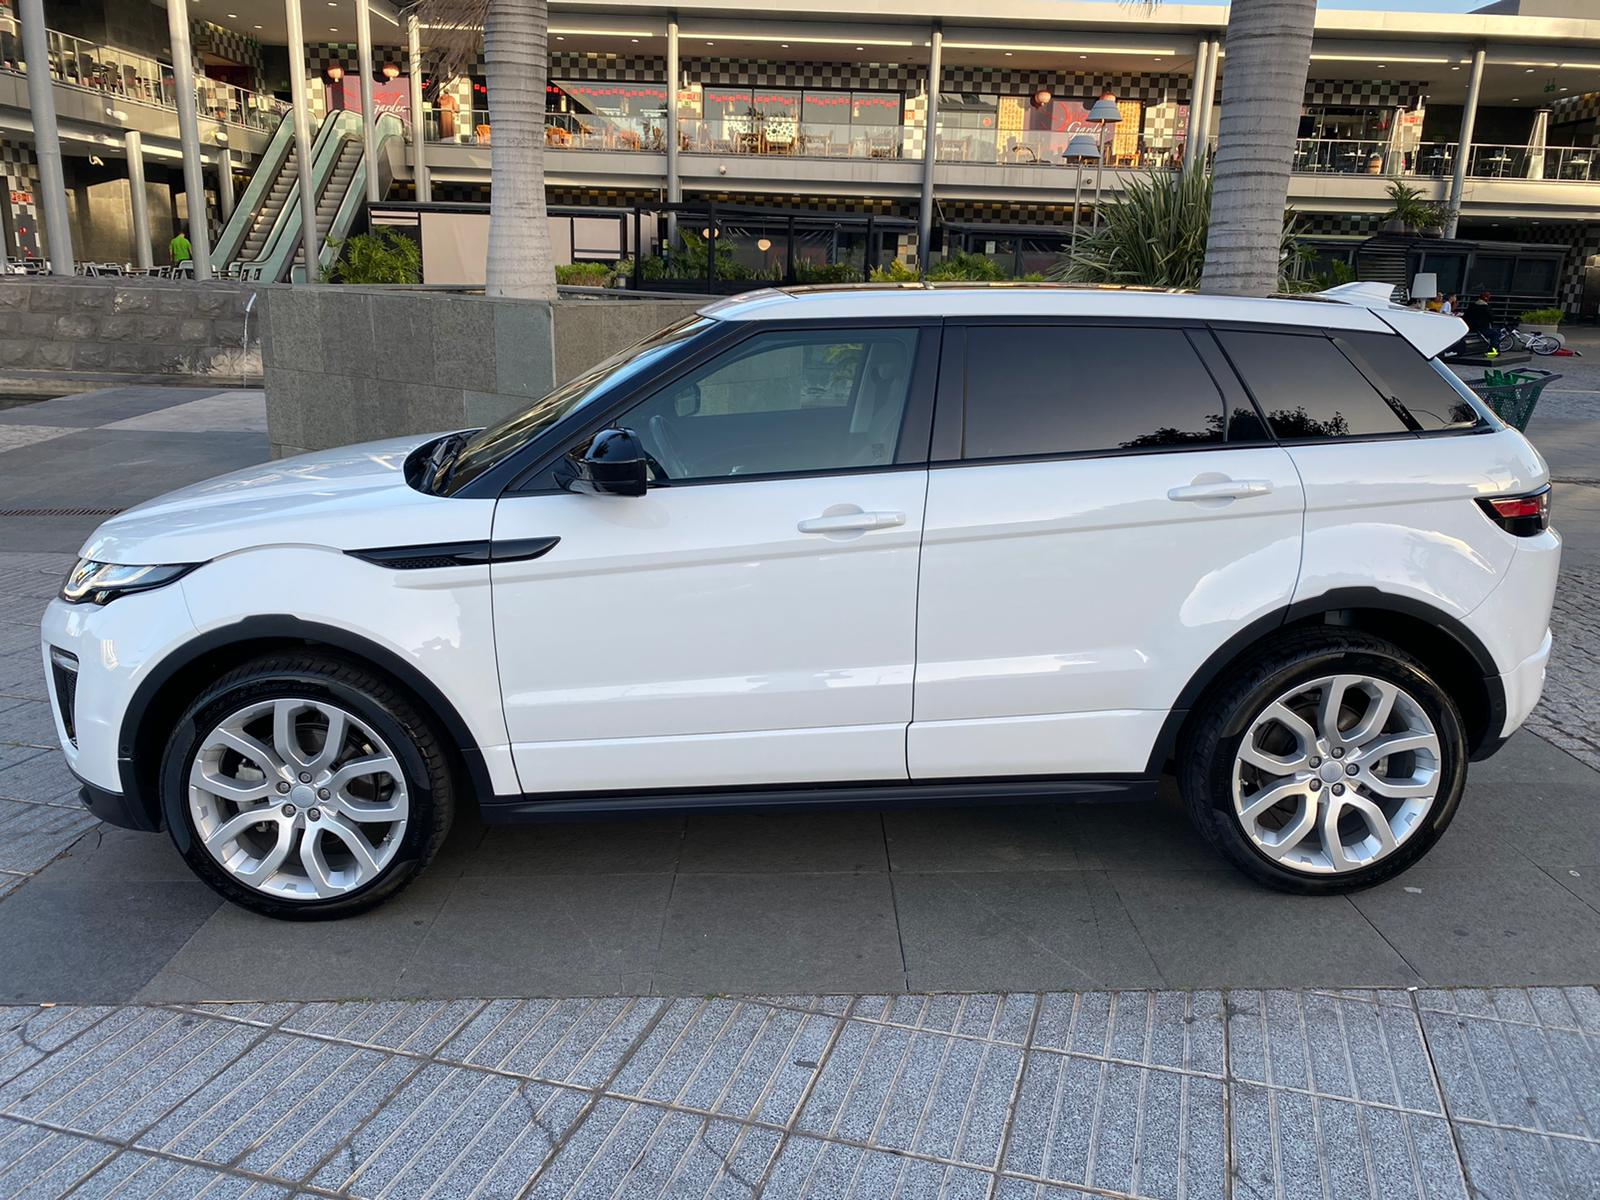 RANGE ROVER EVOQUE DYNAMIC 2.0 TD4 2016 FEB20 (3)